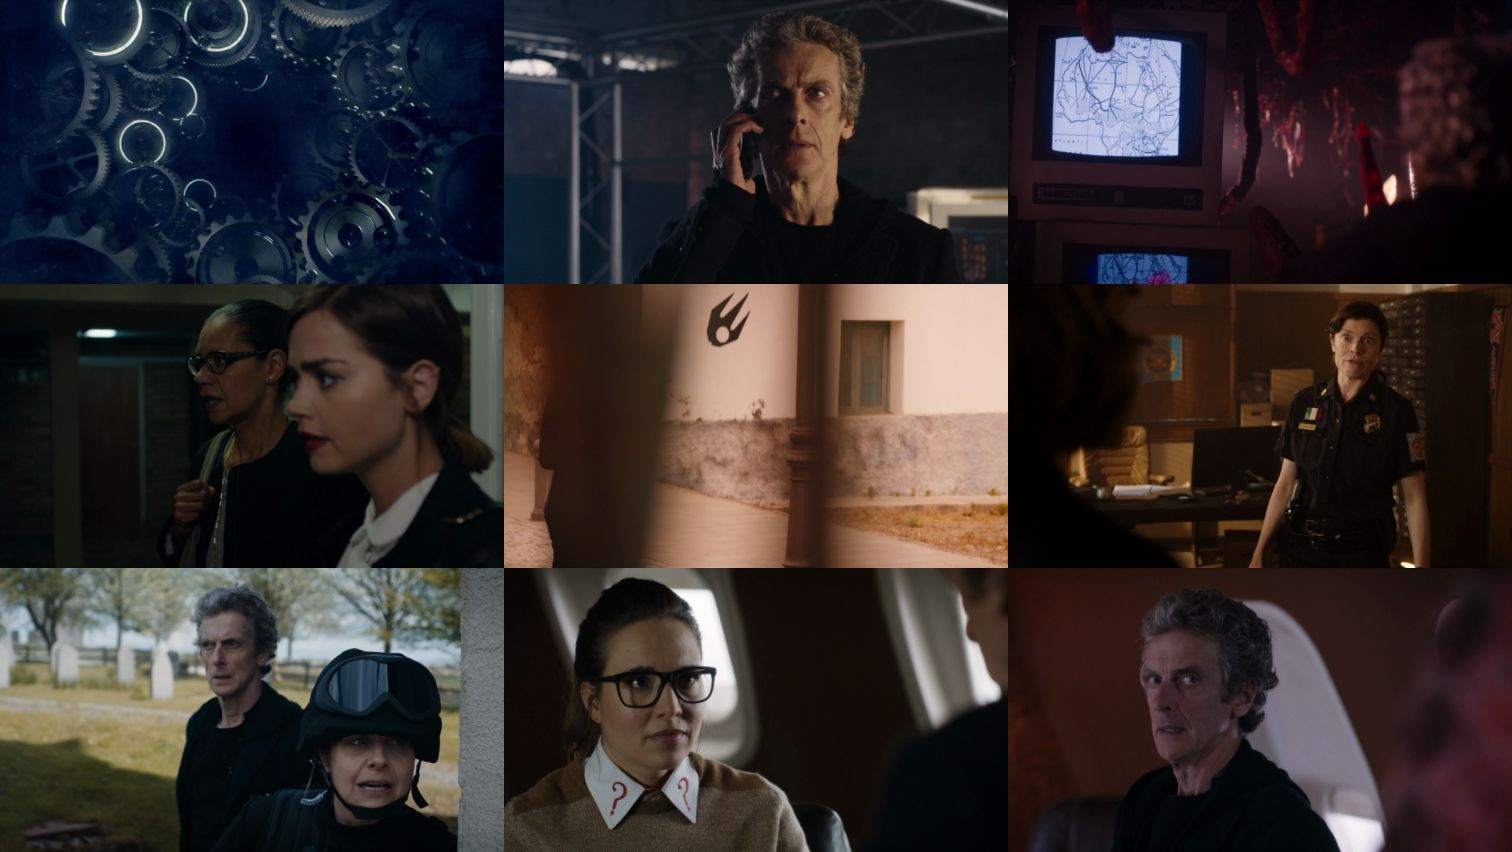 Doctor Who 2005 S09E07 HDTV x264-TLA